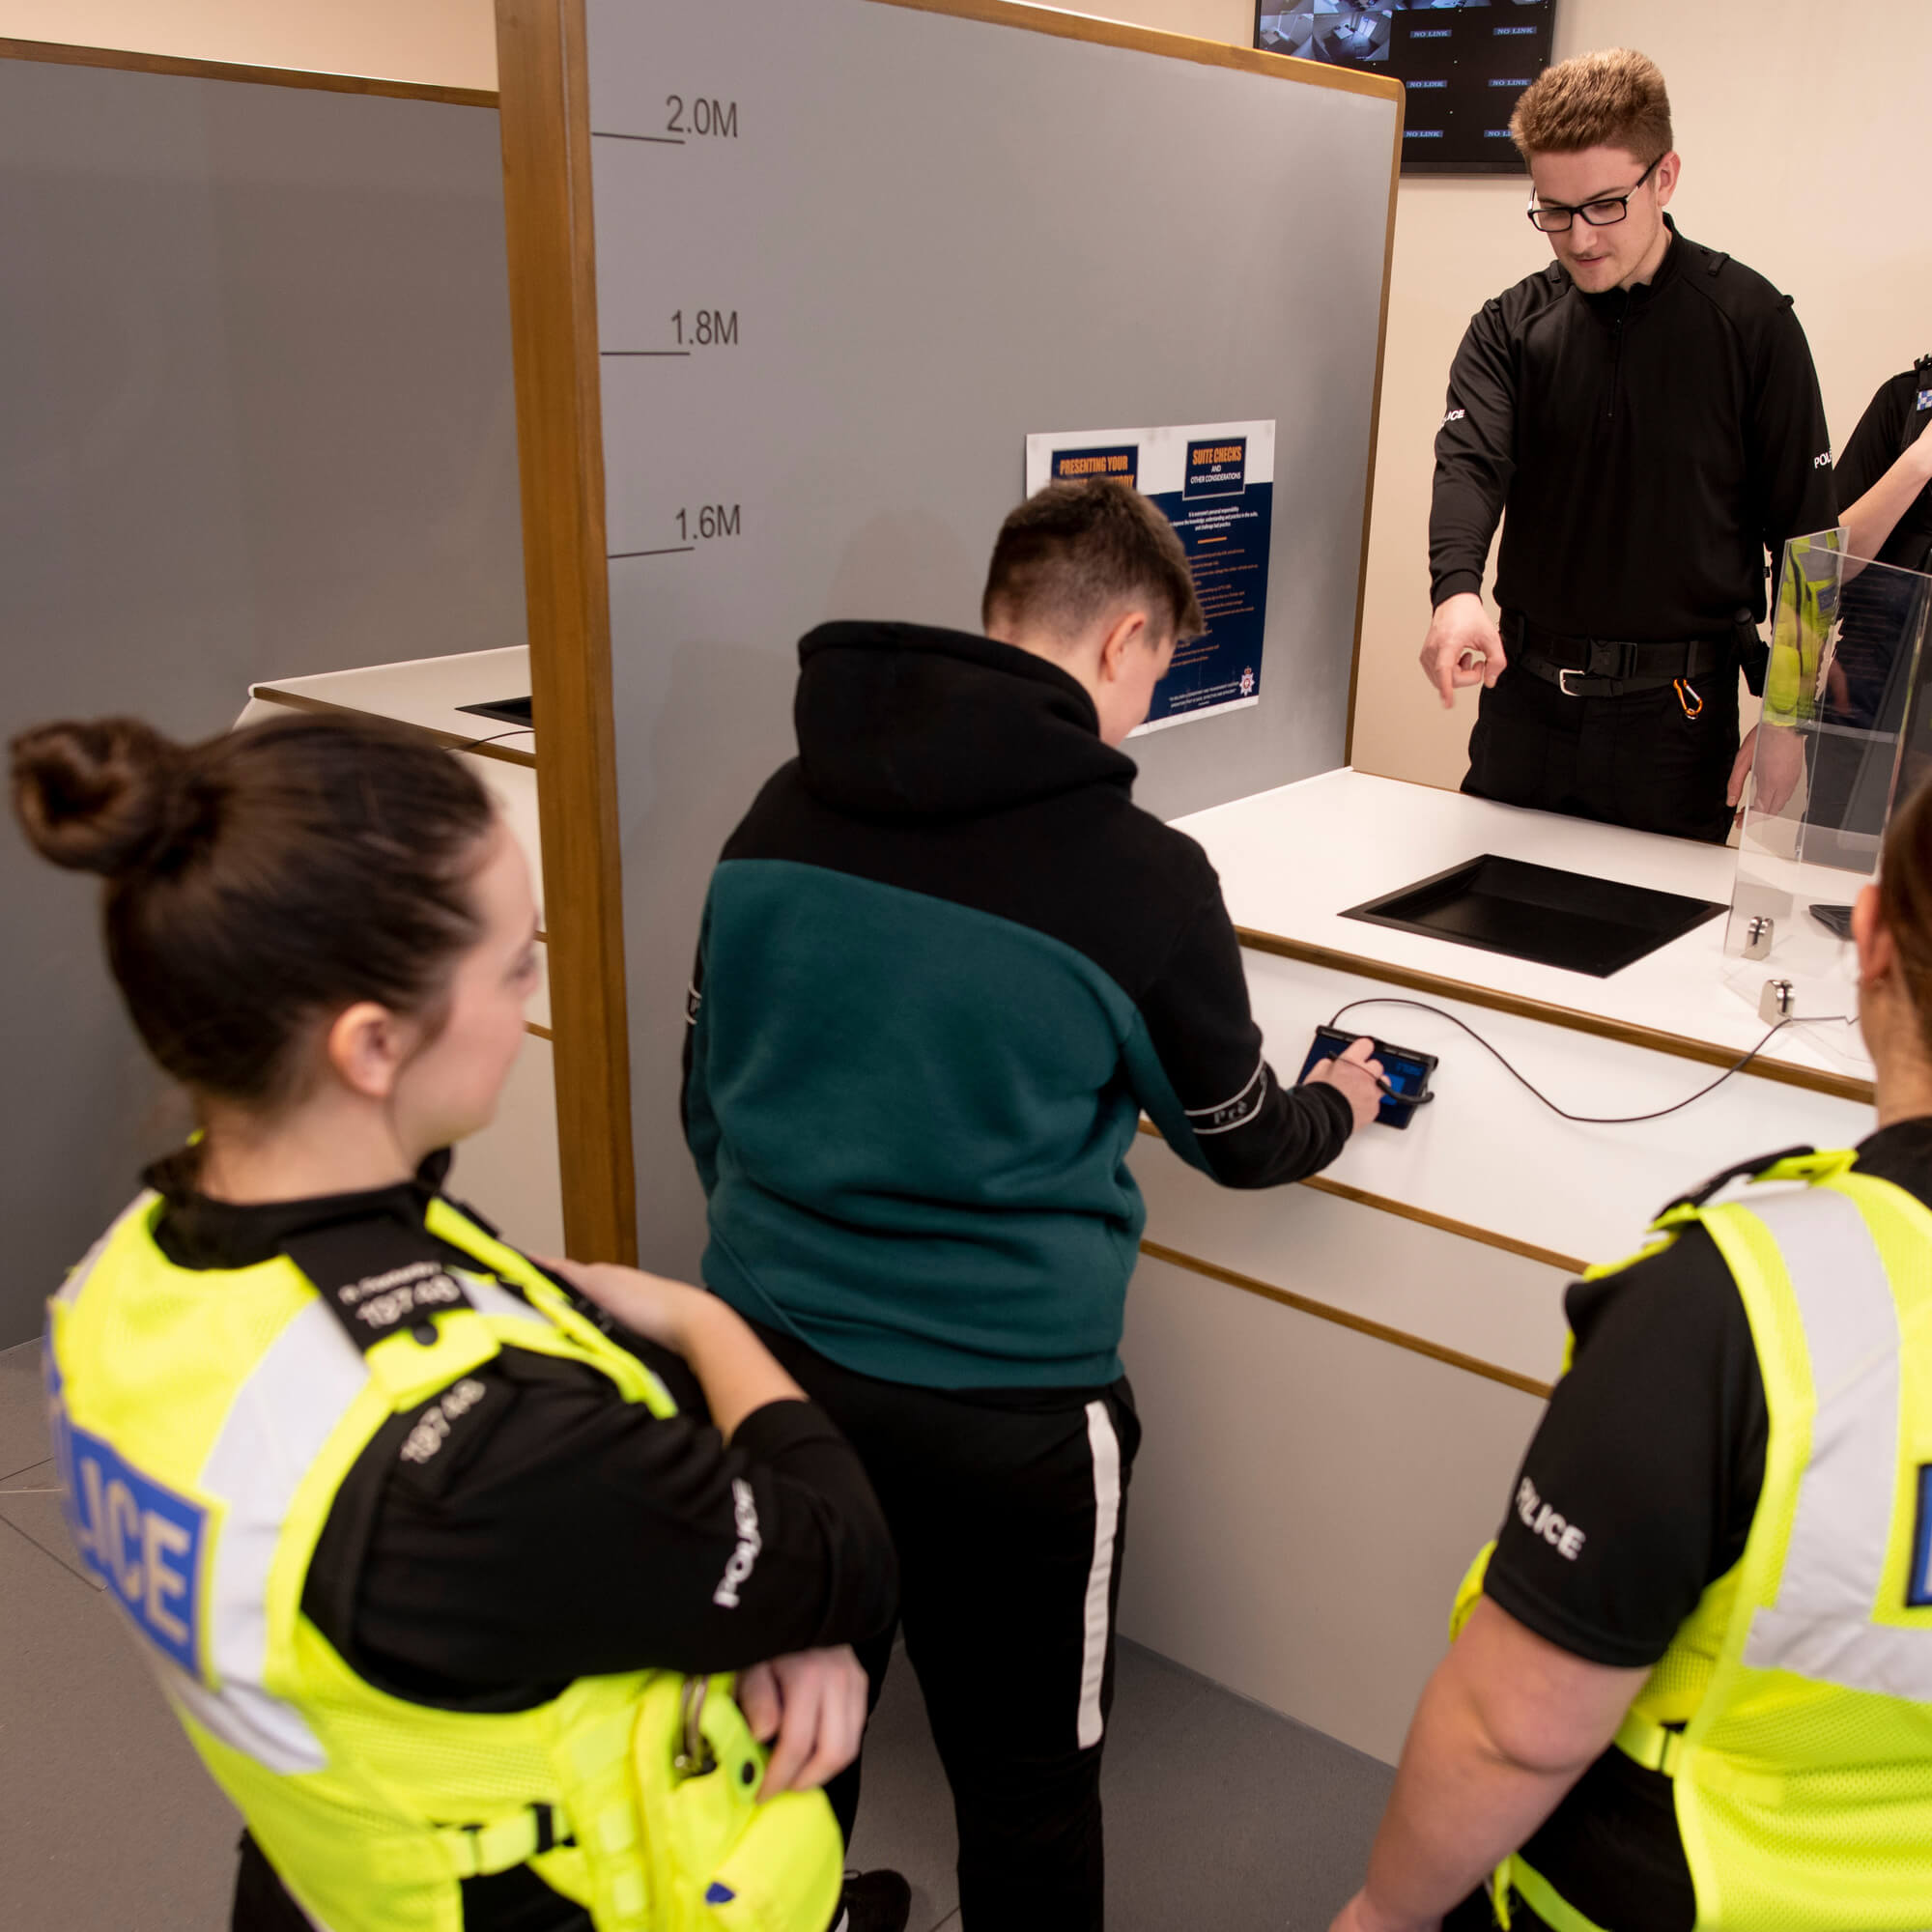 Policing students in uniform booking in a suspect at the custody suite desk